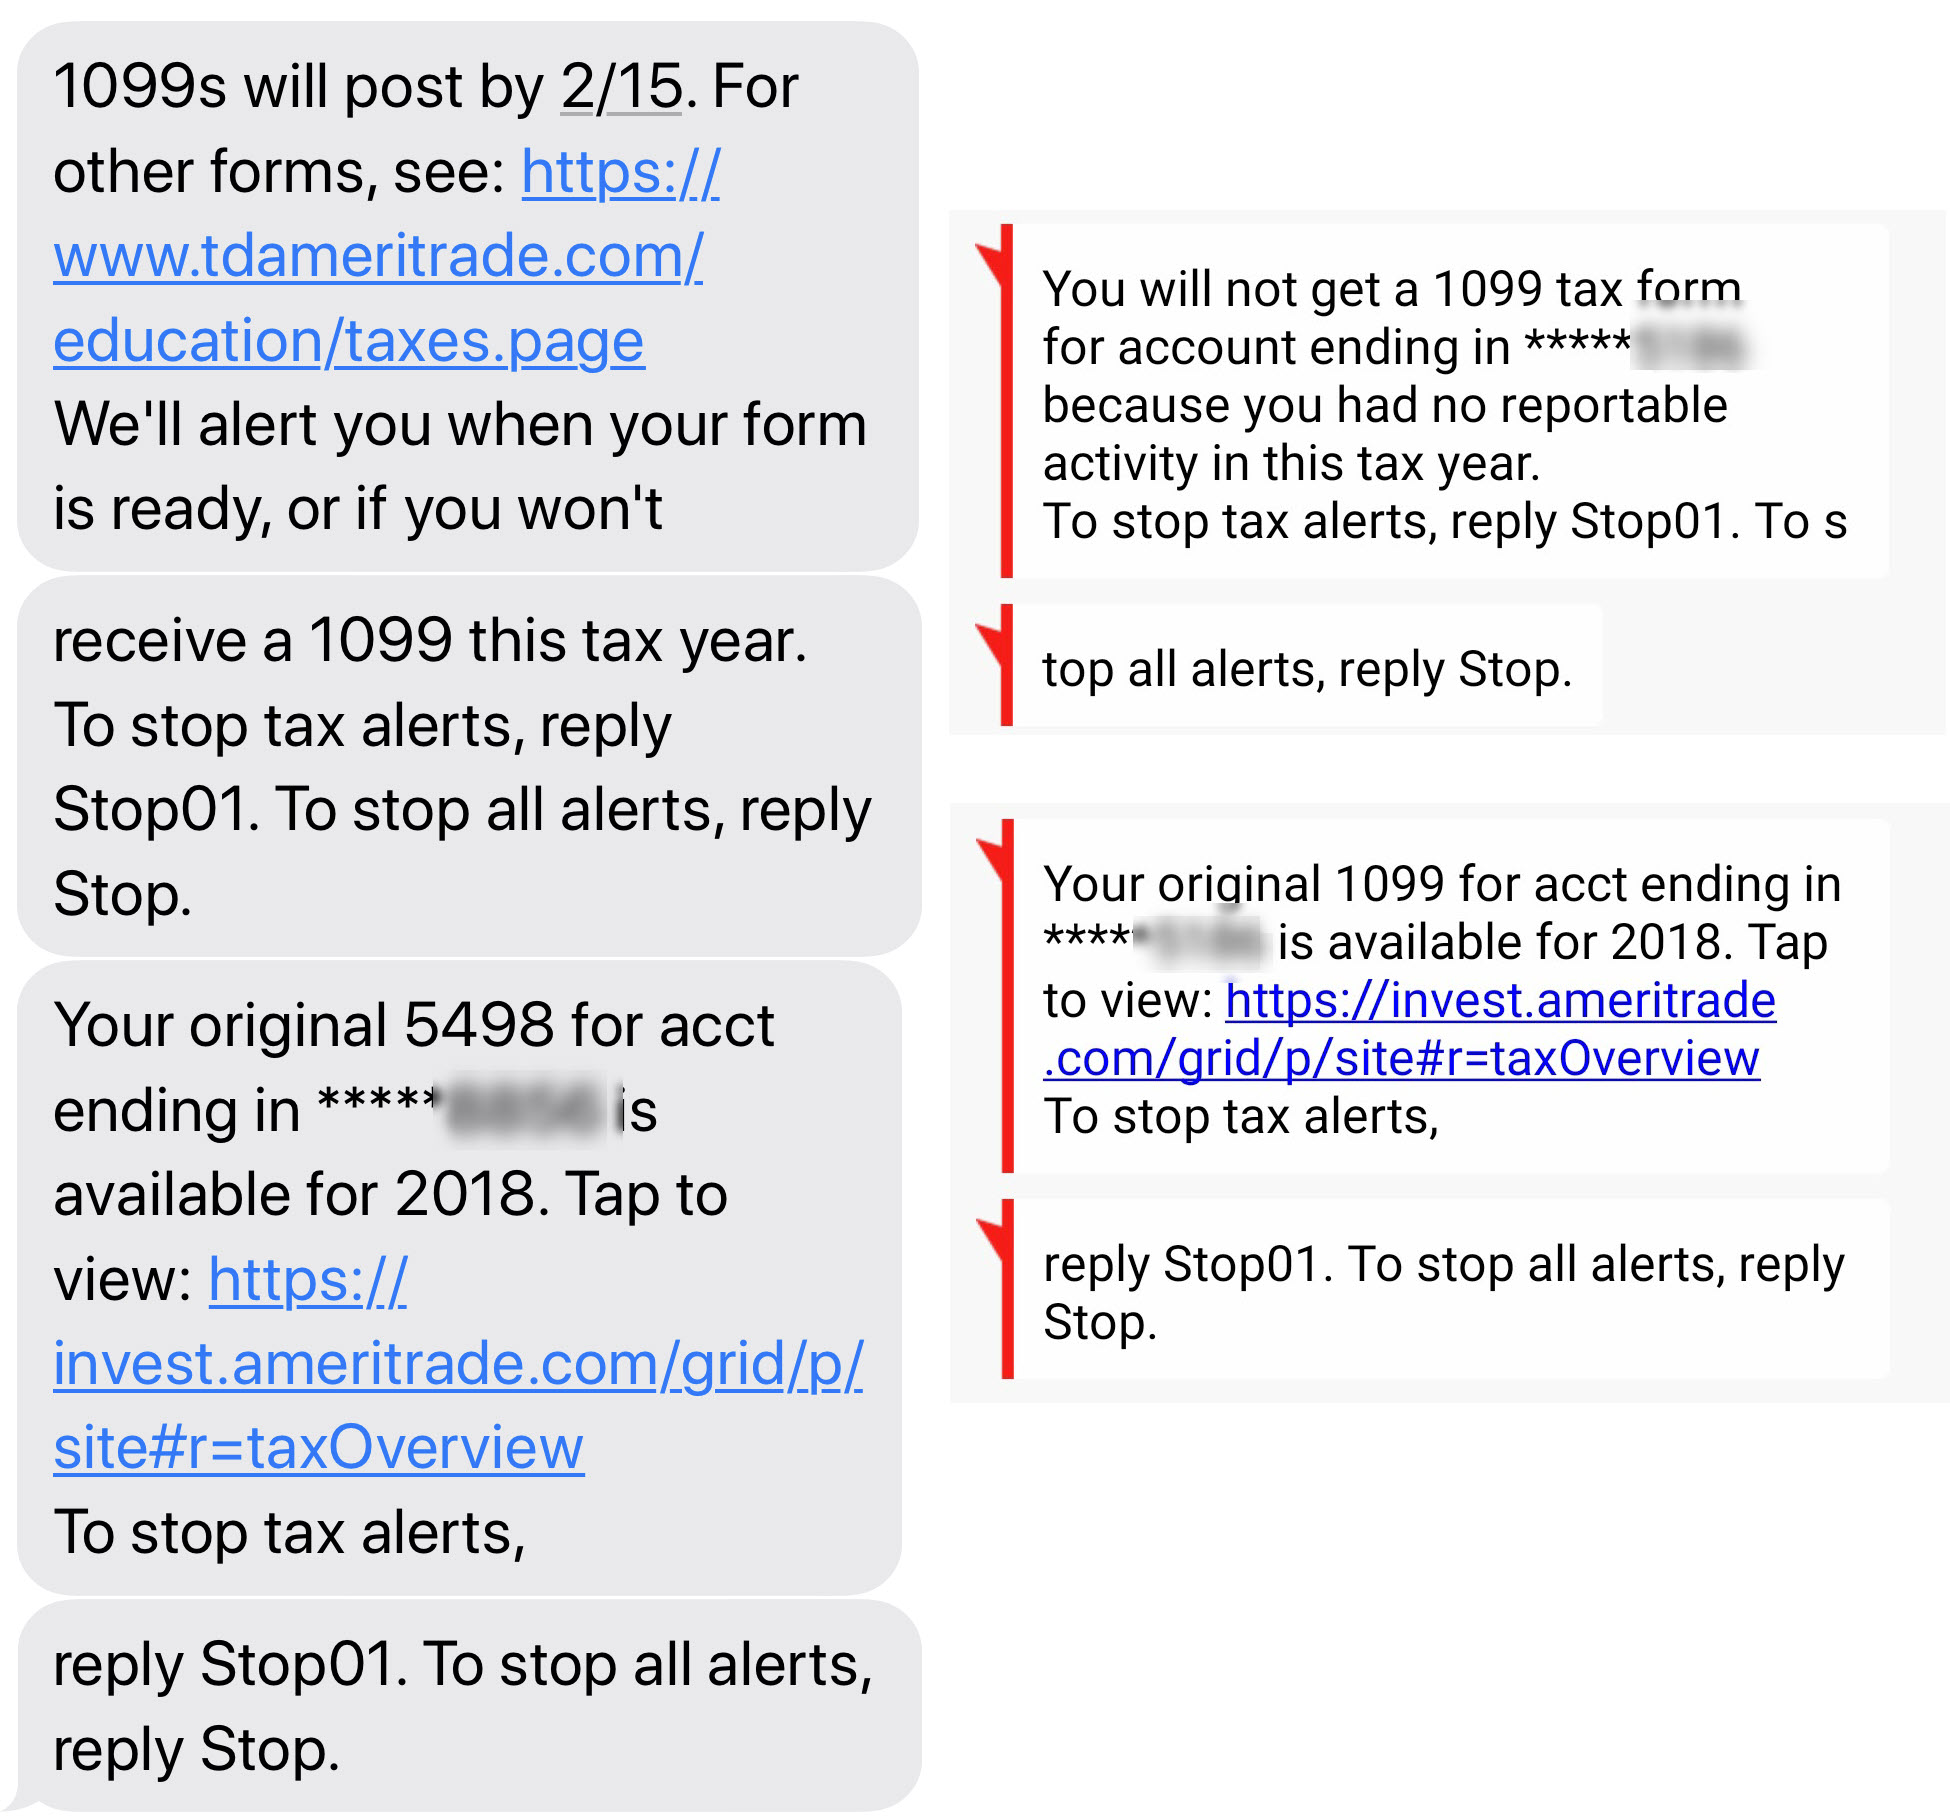 Text alerts about tax forms